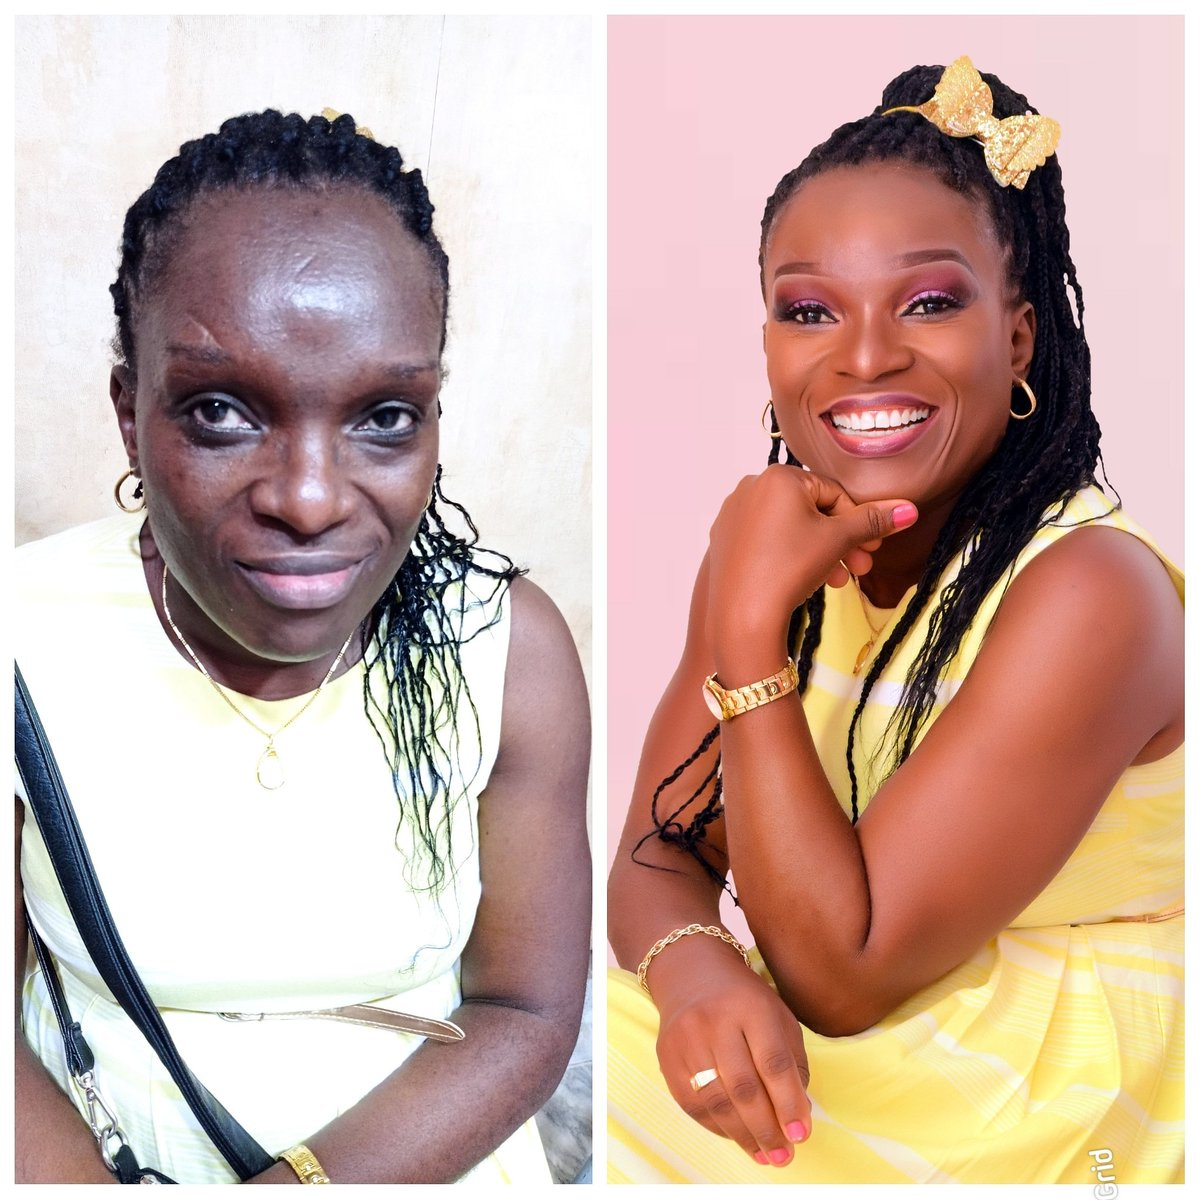 Before meets after #birthdayglam #birthdayshoot #makeupartistinibadan #ibadanmakeupartist #osogbomua #ogbomoshoweddings #mua #UCH #makeup #ibadanconnect #connectibadan #instablog